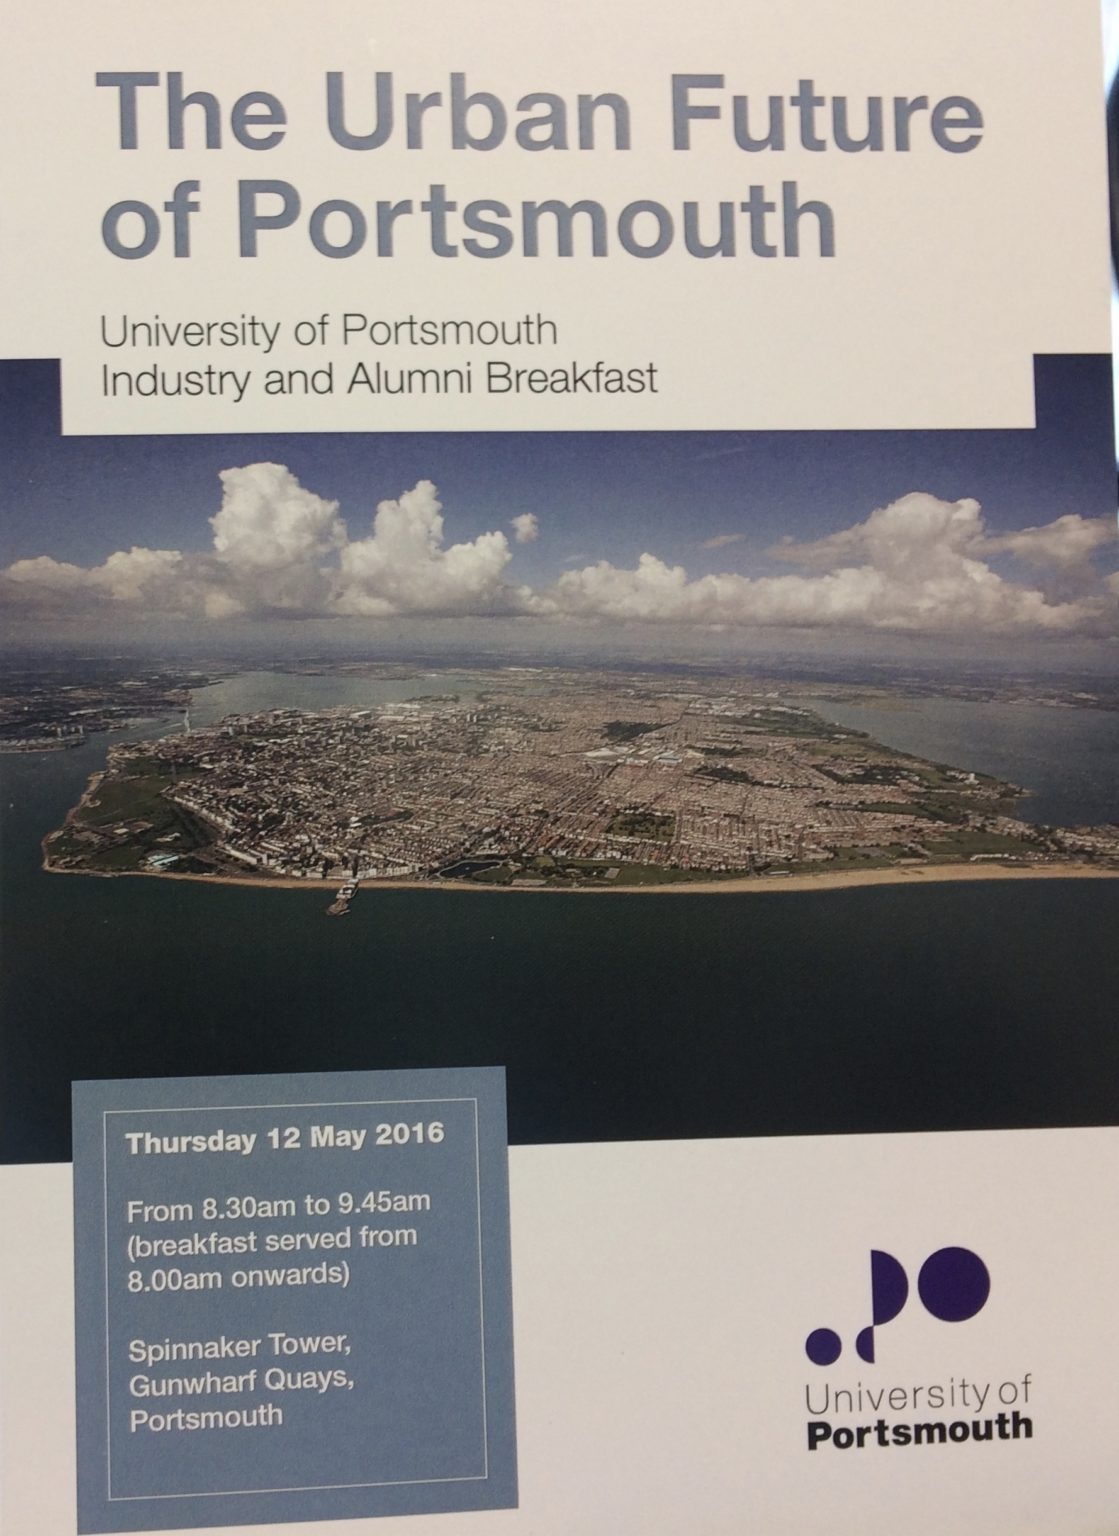 Future of Urban Portsmouth. Really?